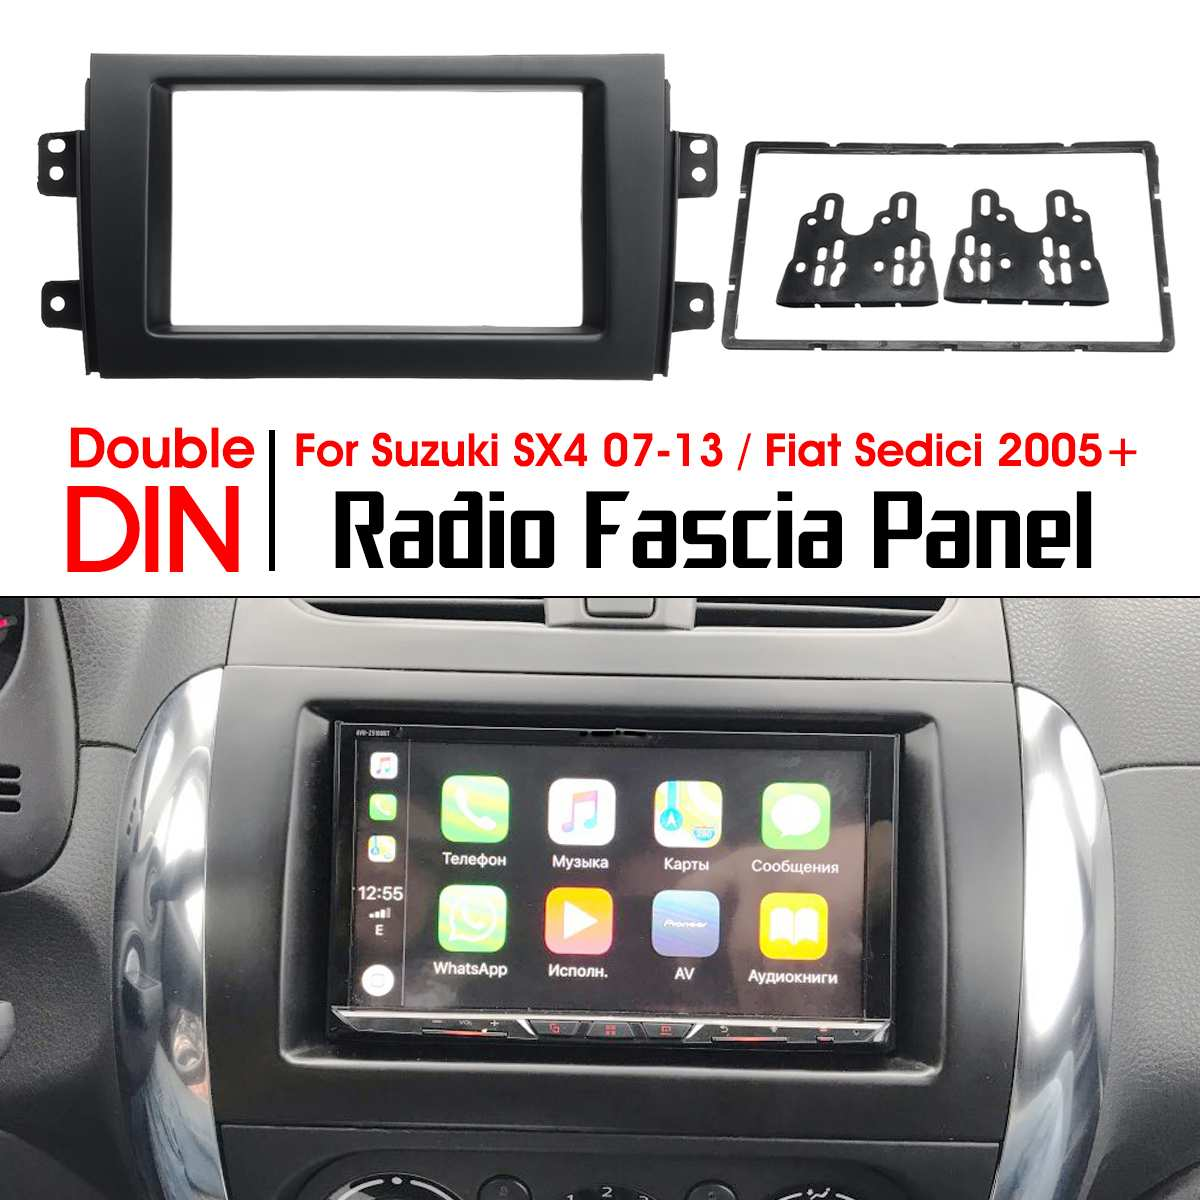 2Din Car Radio <font><b>Fascia</b></font> Stereo Player Panel Cover Trim Frame for <font><b>Suzuki</b></font> SX4 2007-2013 for Fiat Sedici 2005+ image